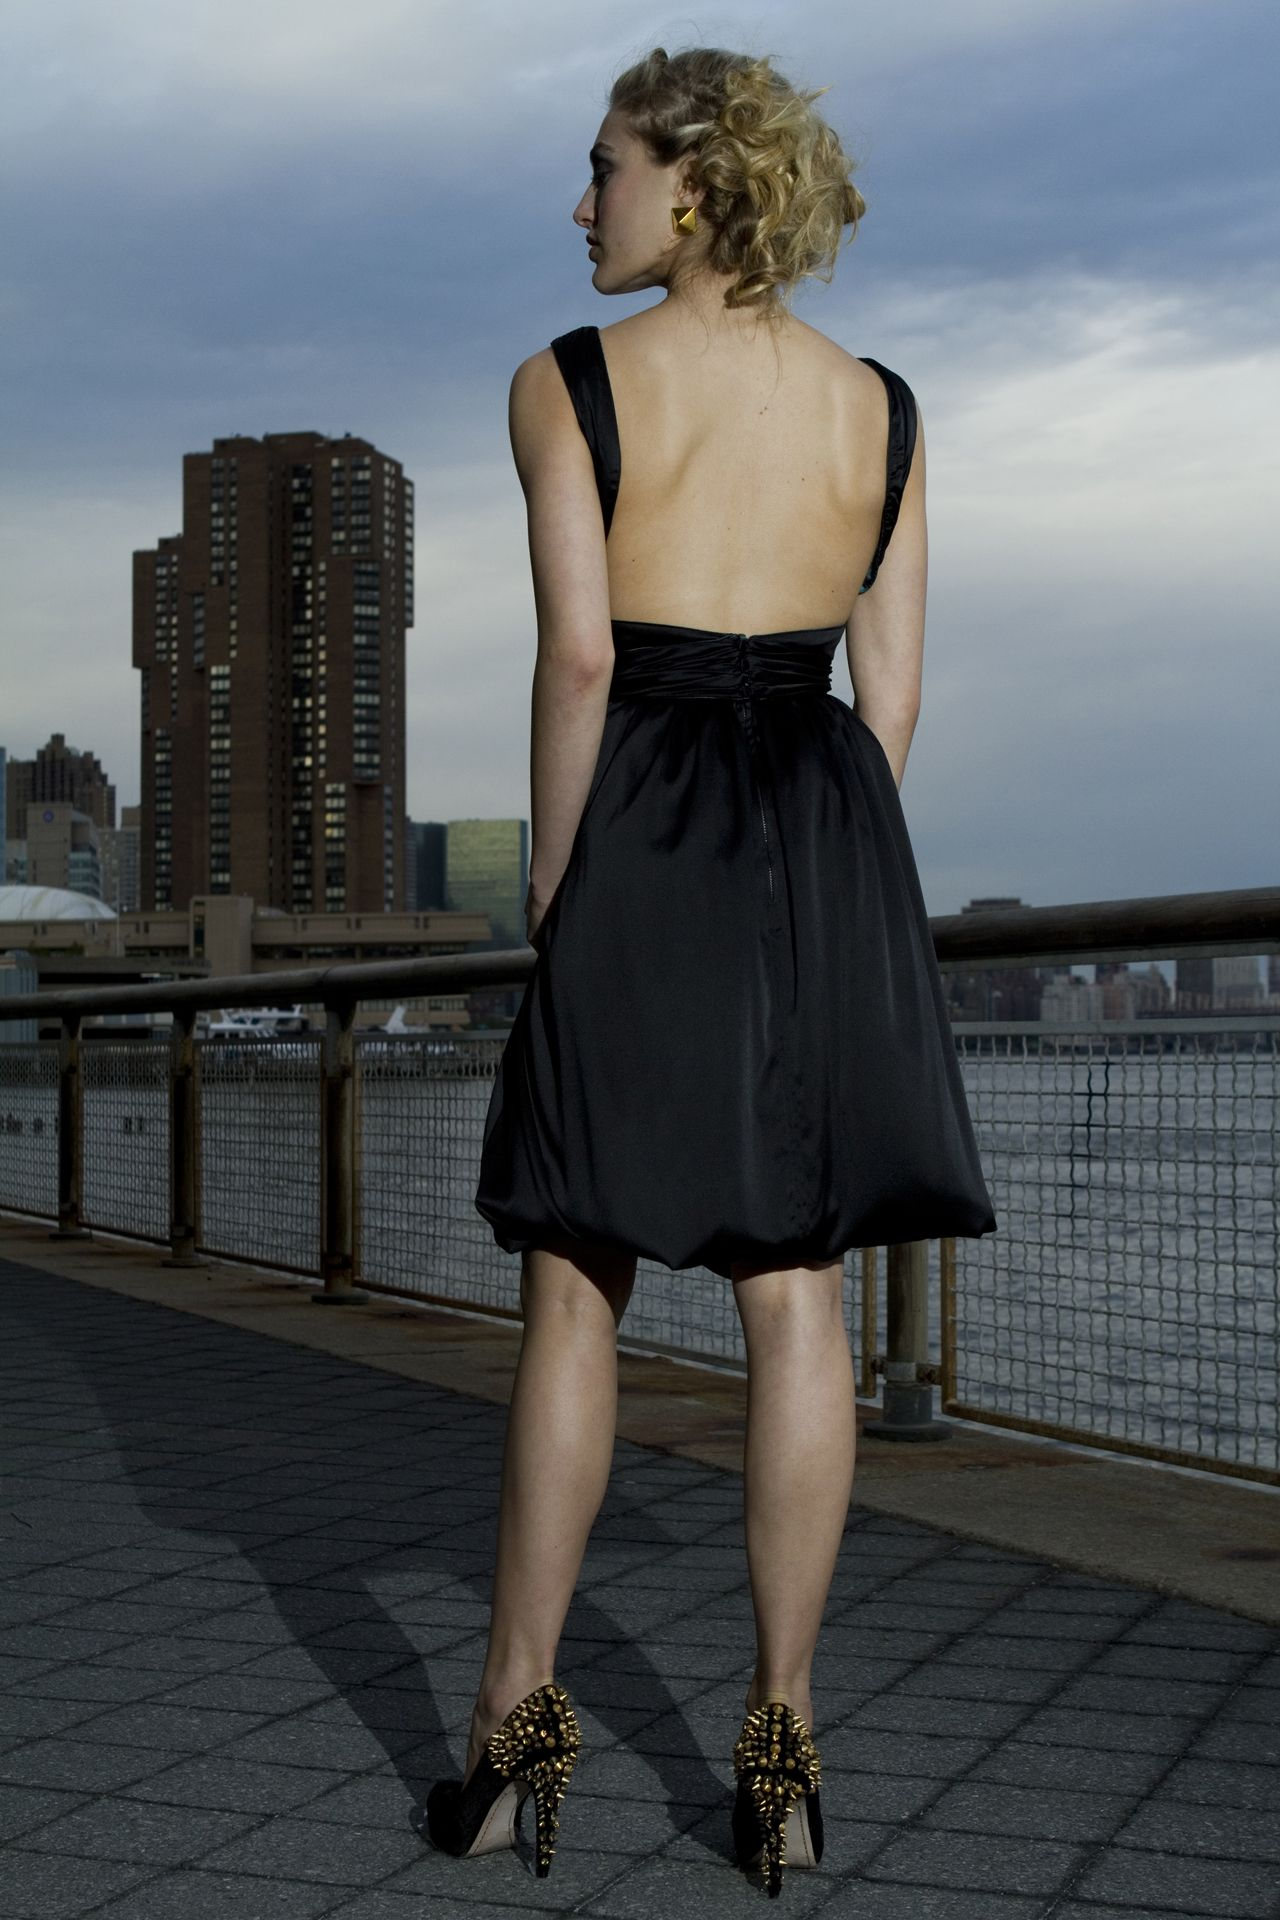 Backless bridesmaid dress that is sure to be a show stopper for your